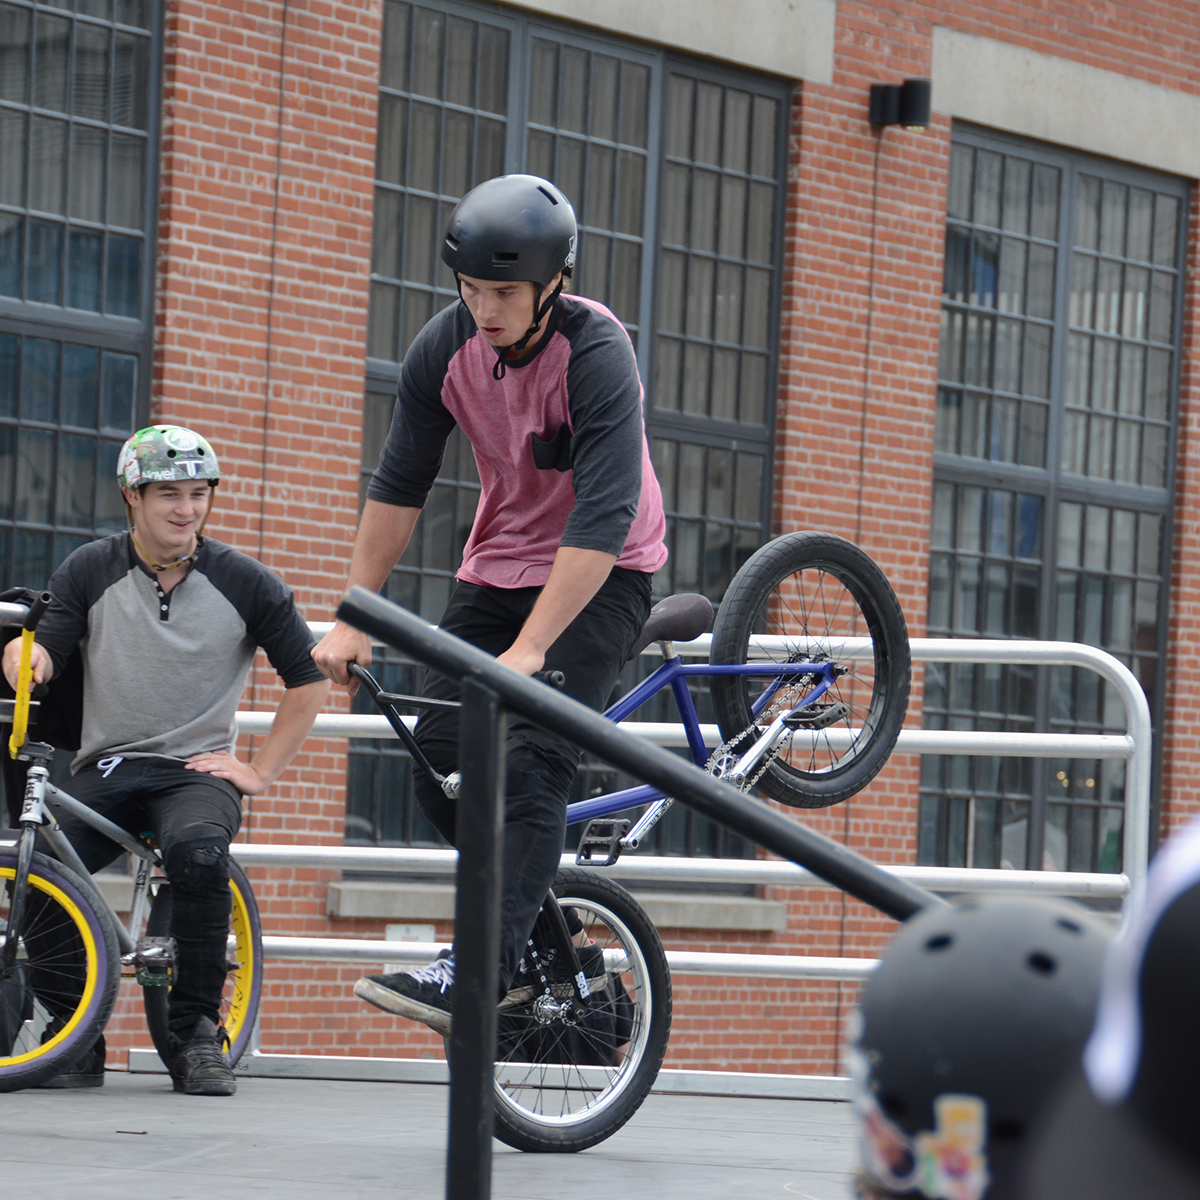 Hang Five at BMX Dew Tour Am Series in Toronto